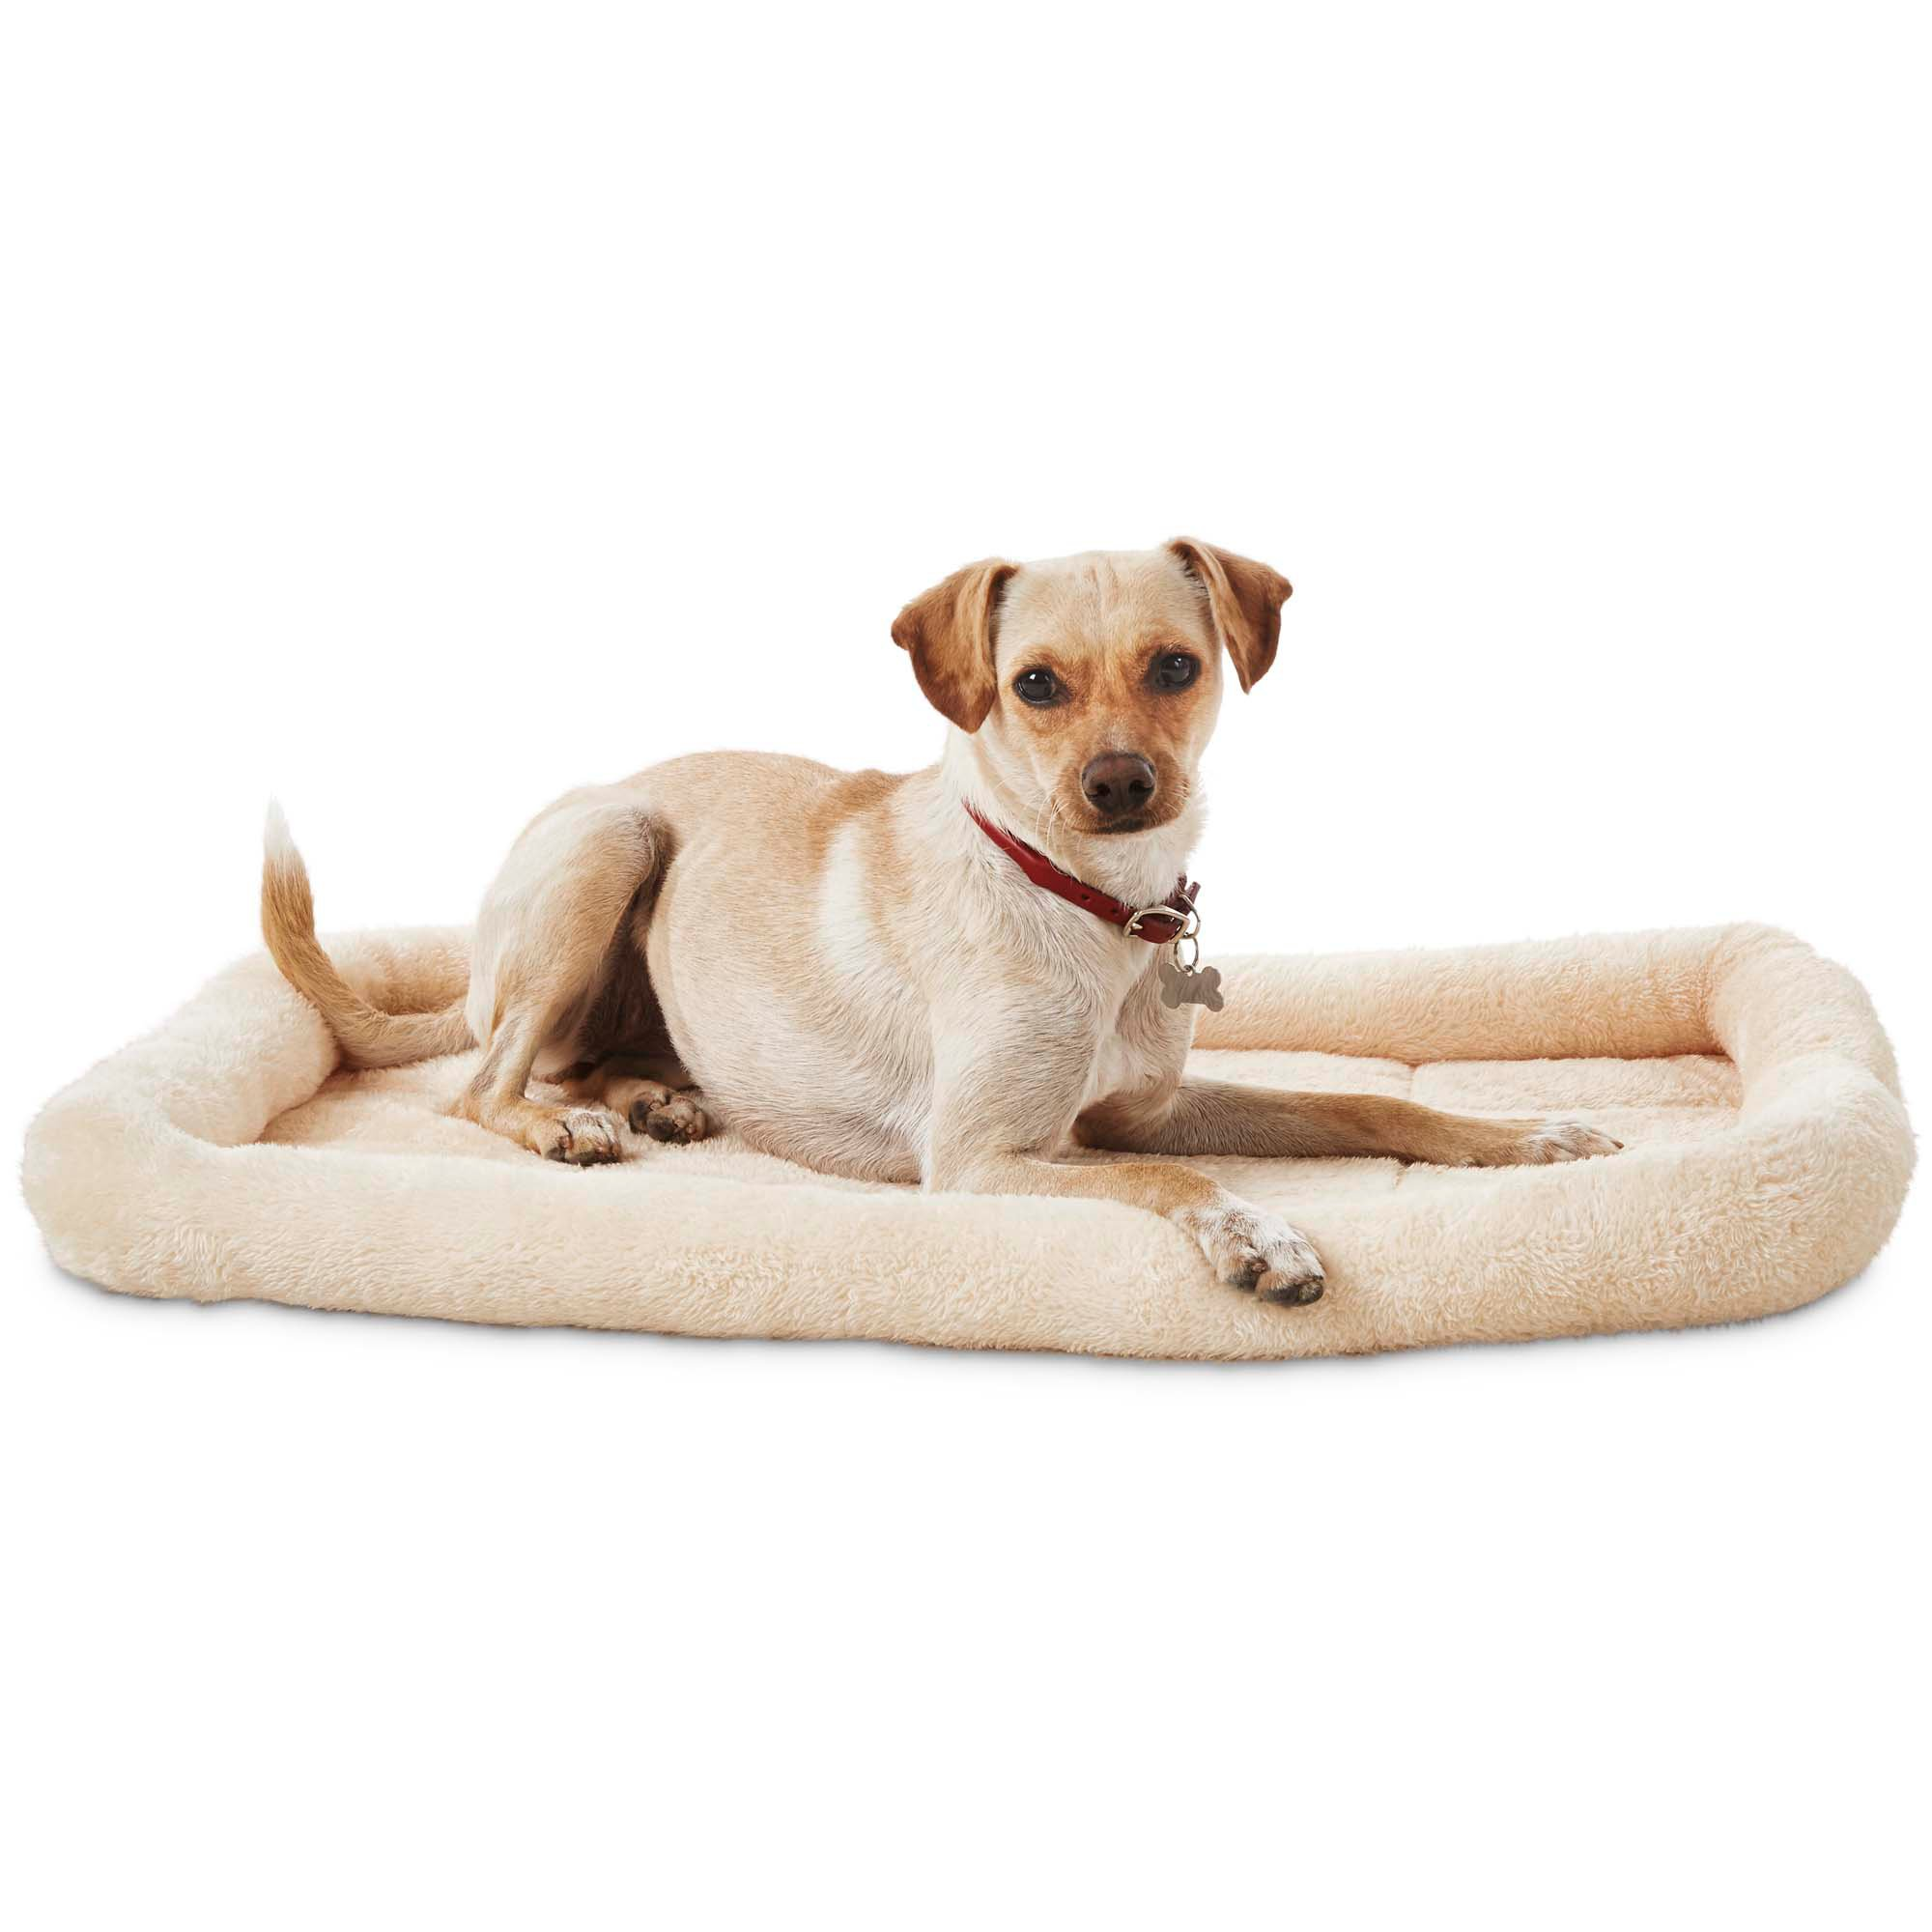 com customer feeding dog dogs helpful for in pets best bella mats pet reviews mat amazon spill pcr loving proof product image rated